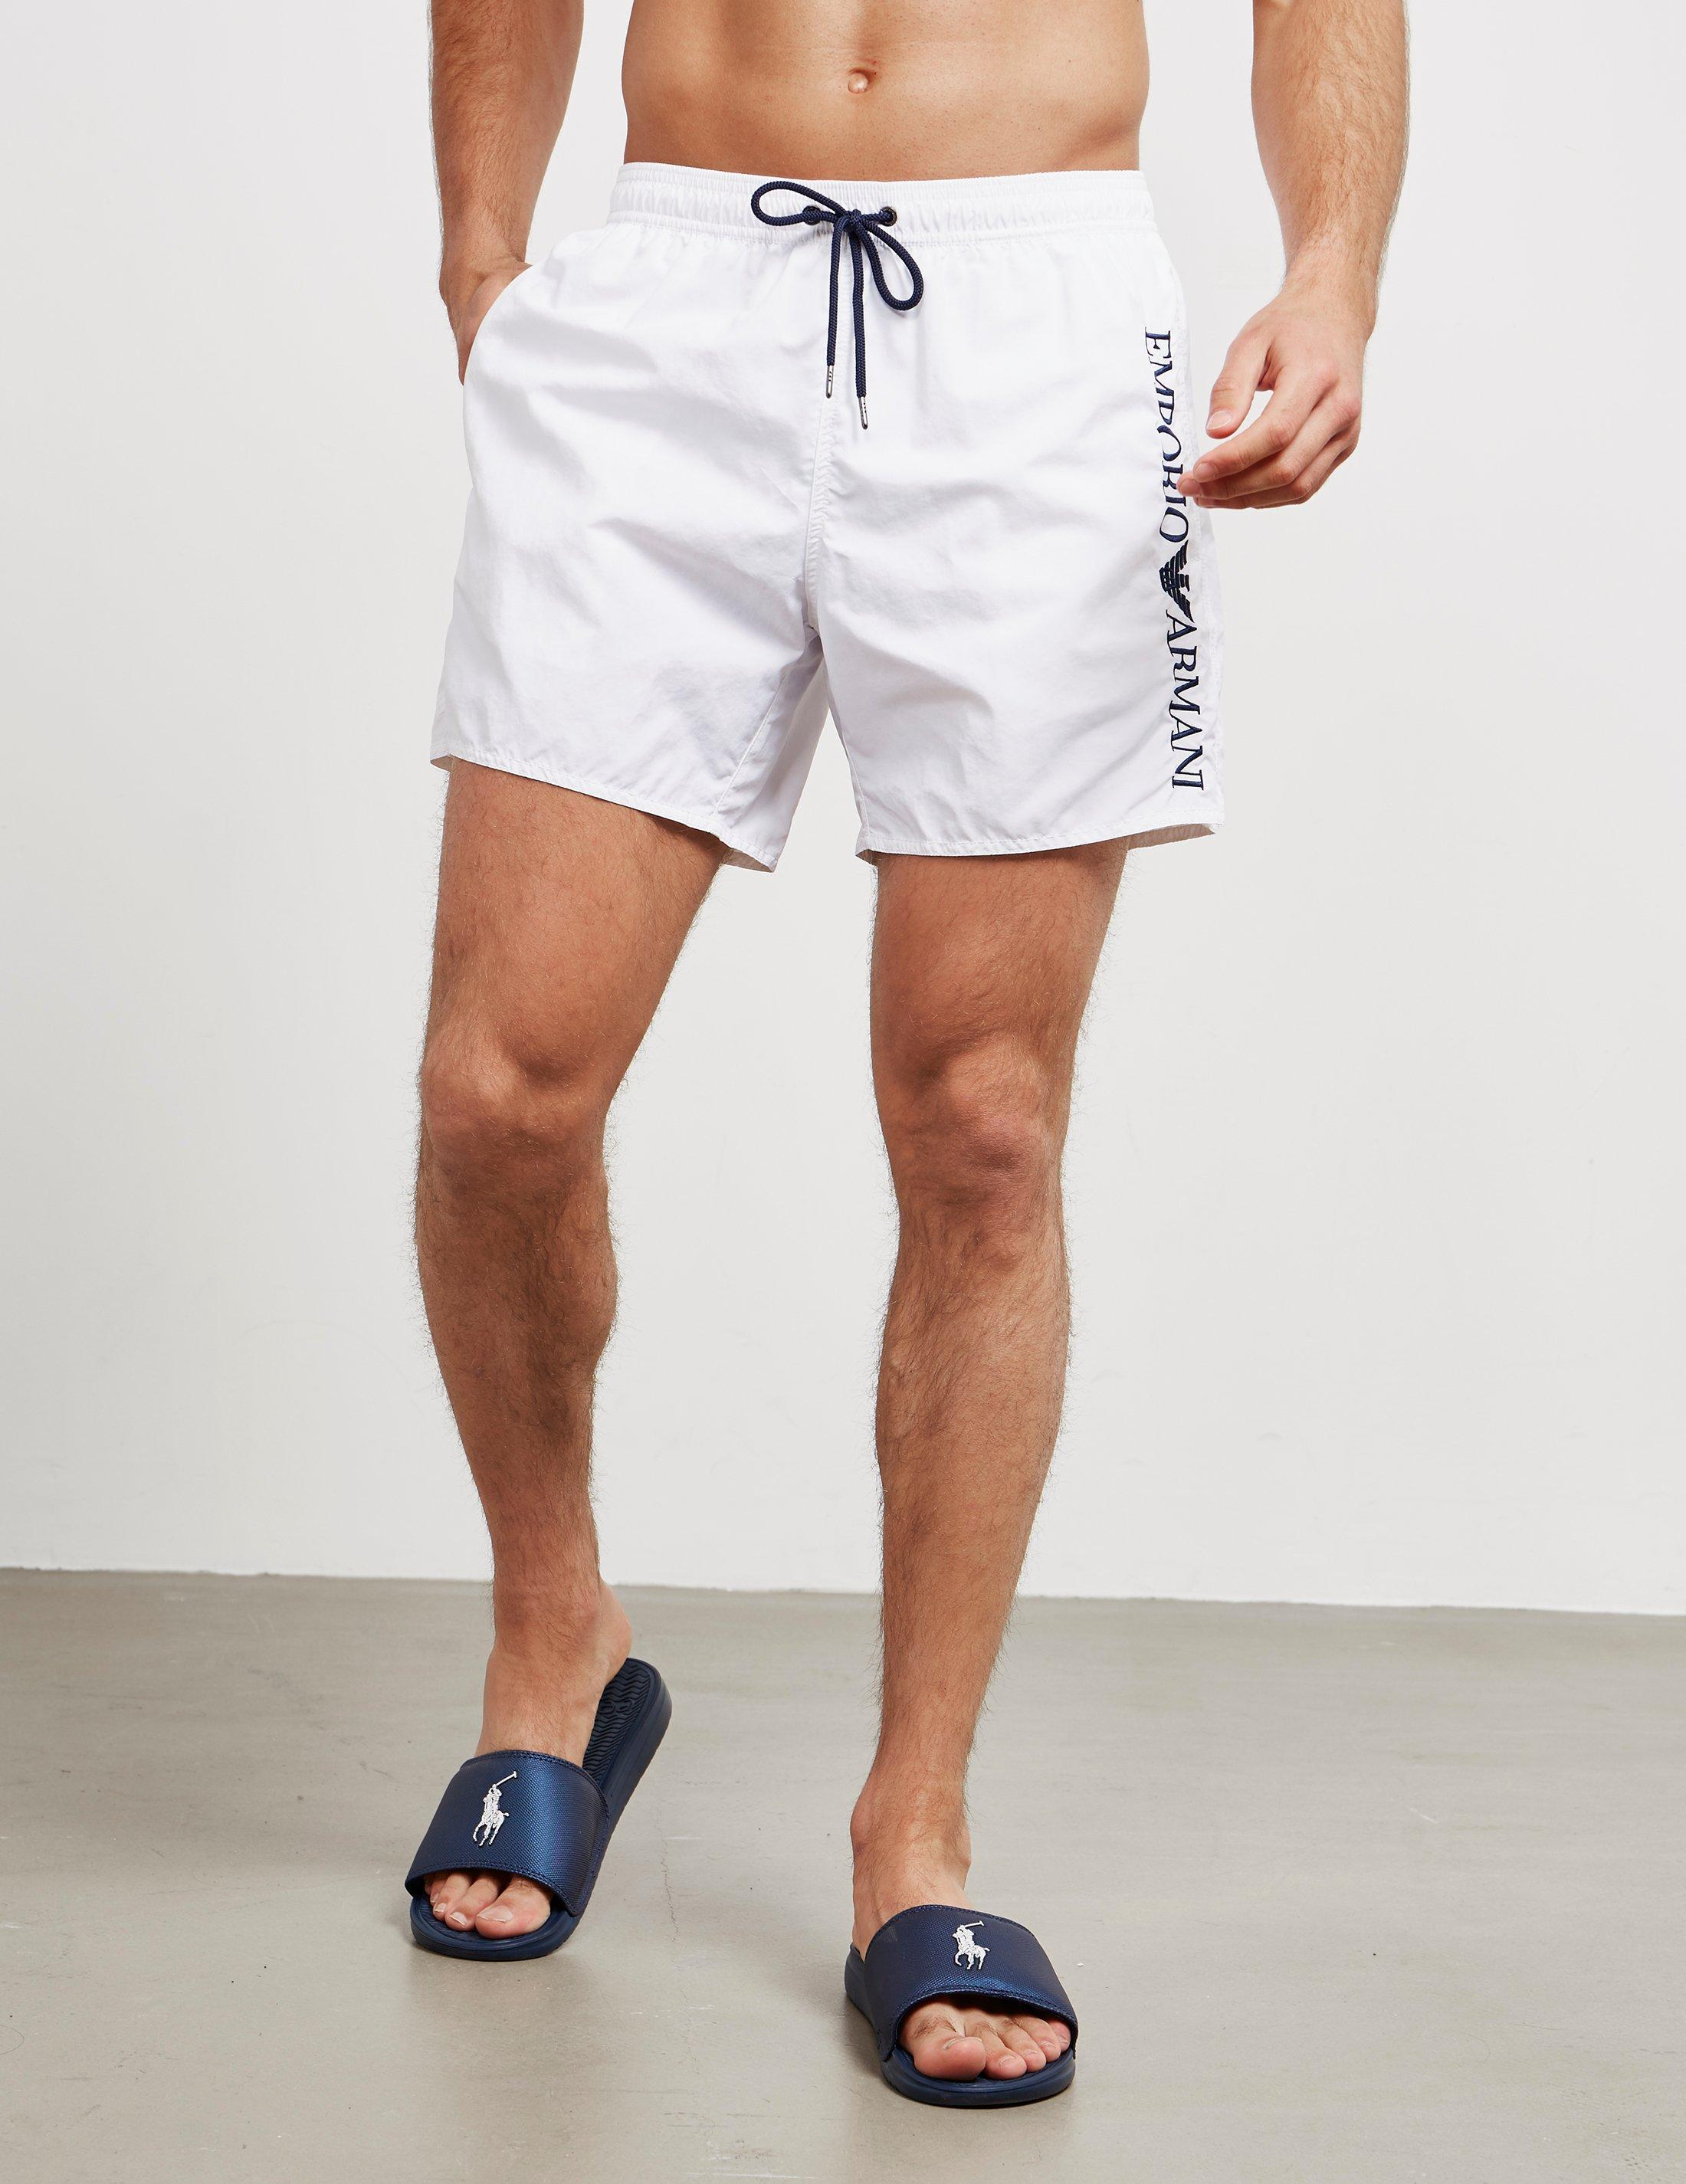 1d80fdb7a3 Lyst - Emporio Armani Logo Swim Shorts White in White for Men